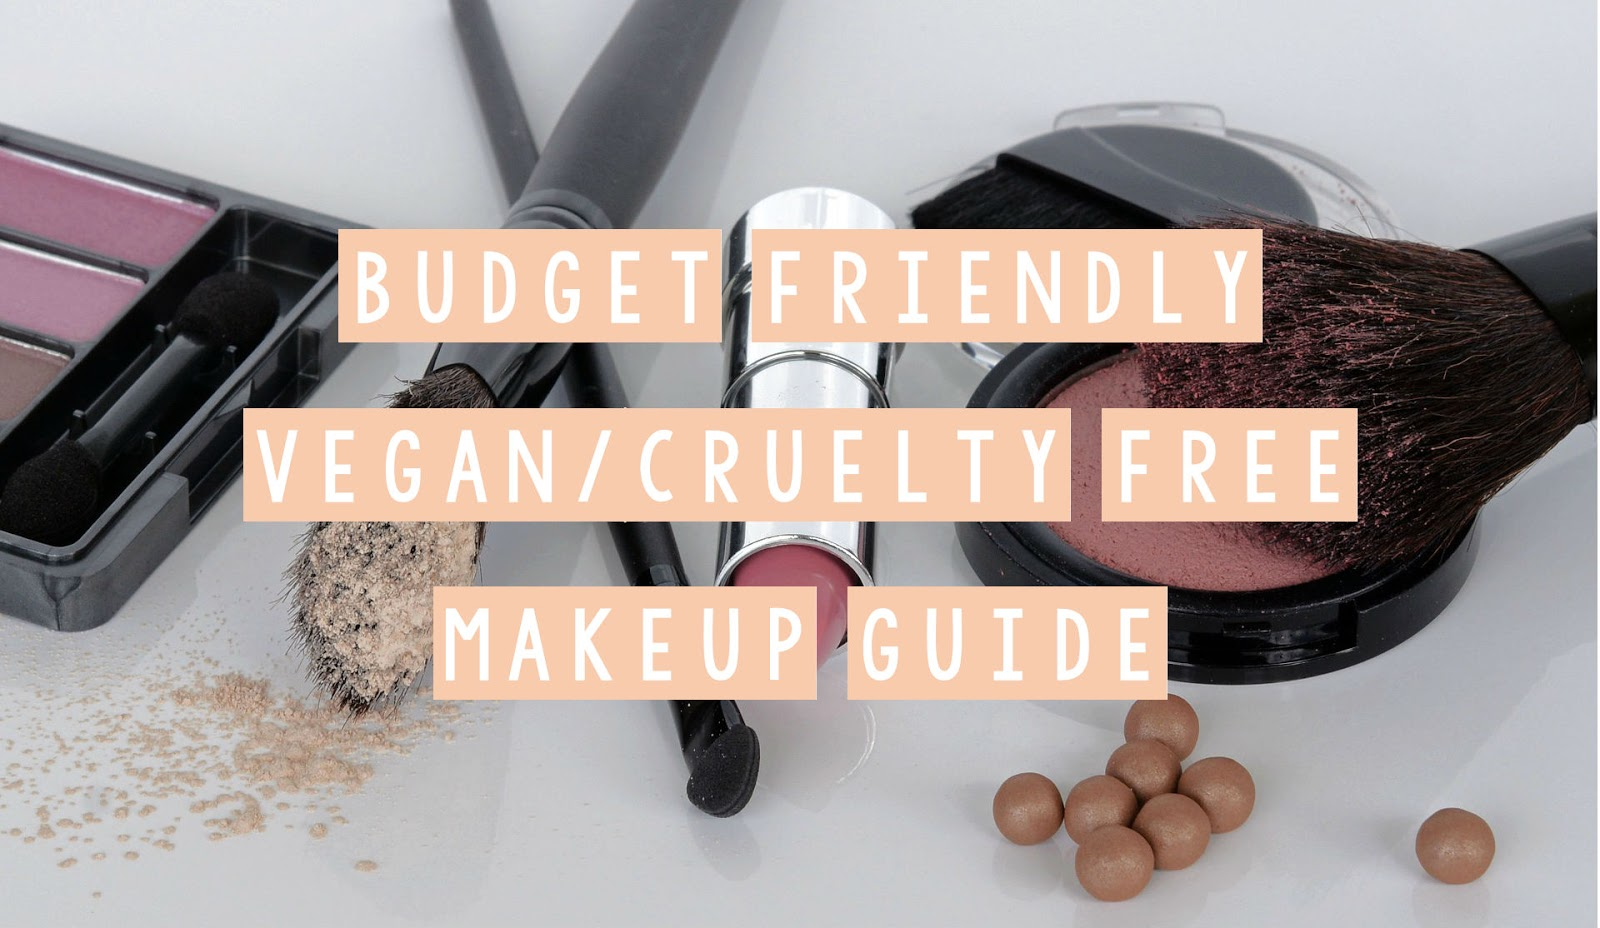 Vegan and Cruelty Free Makeup Guide